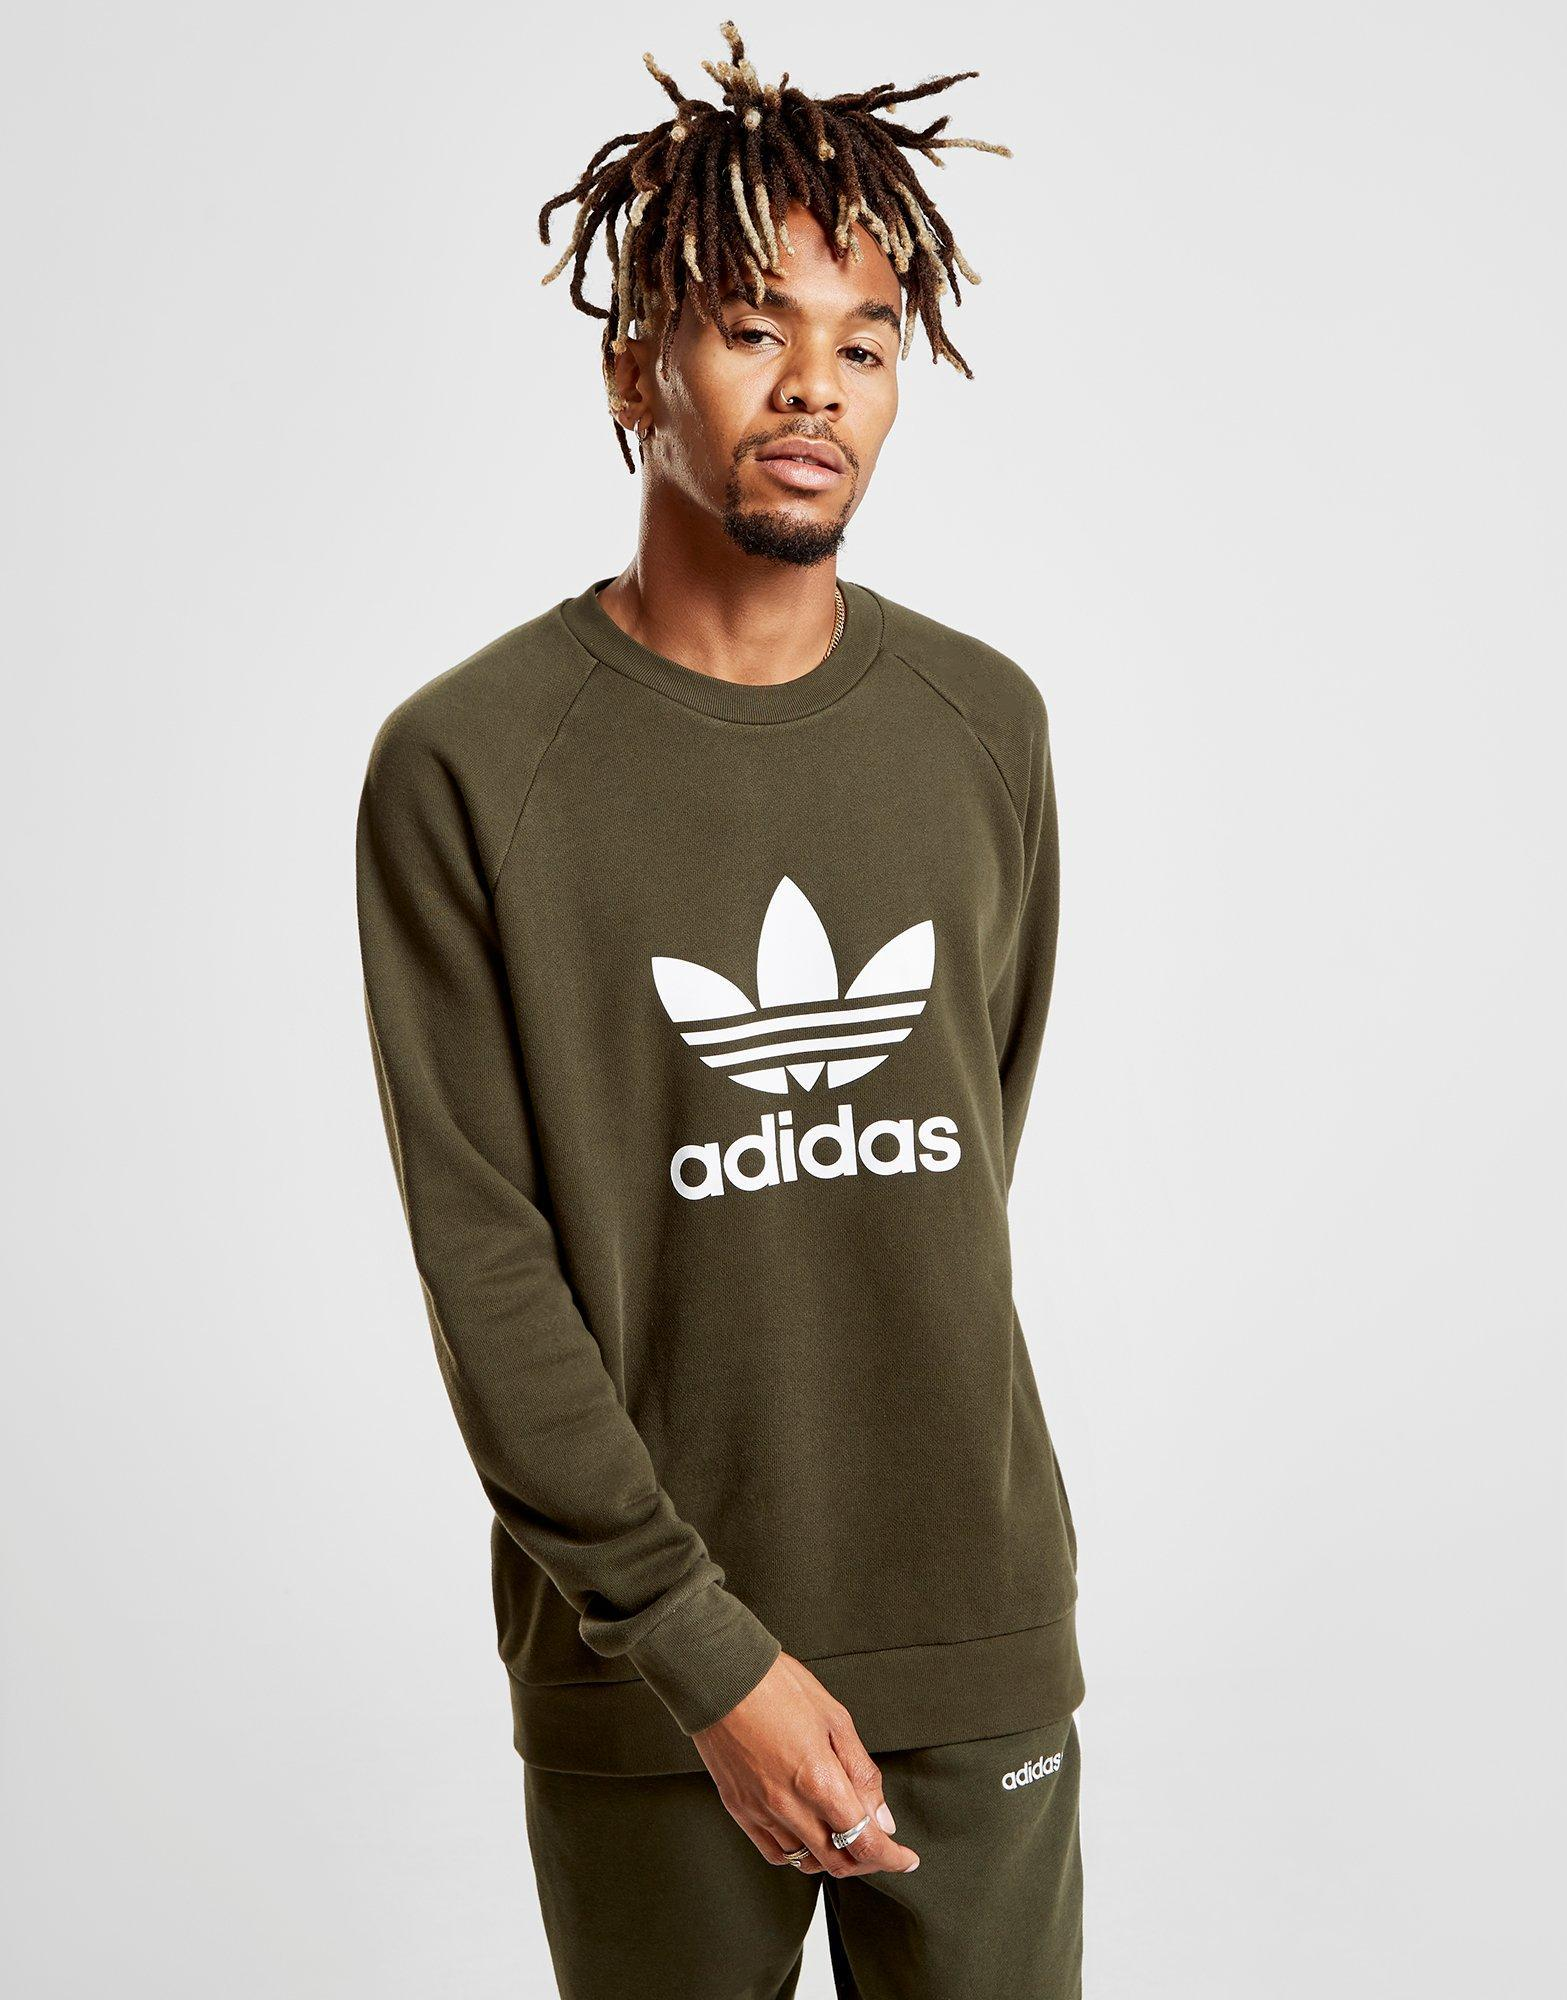 eaac23f3e9e7 Lyst - Adidas Originals Trefoil Crew Sweatshirt in Natural for Men